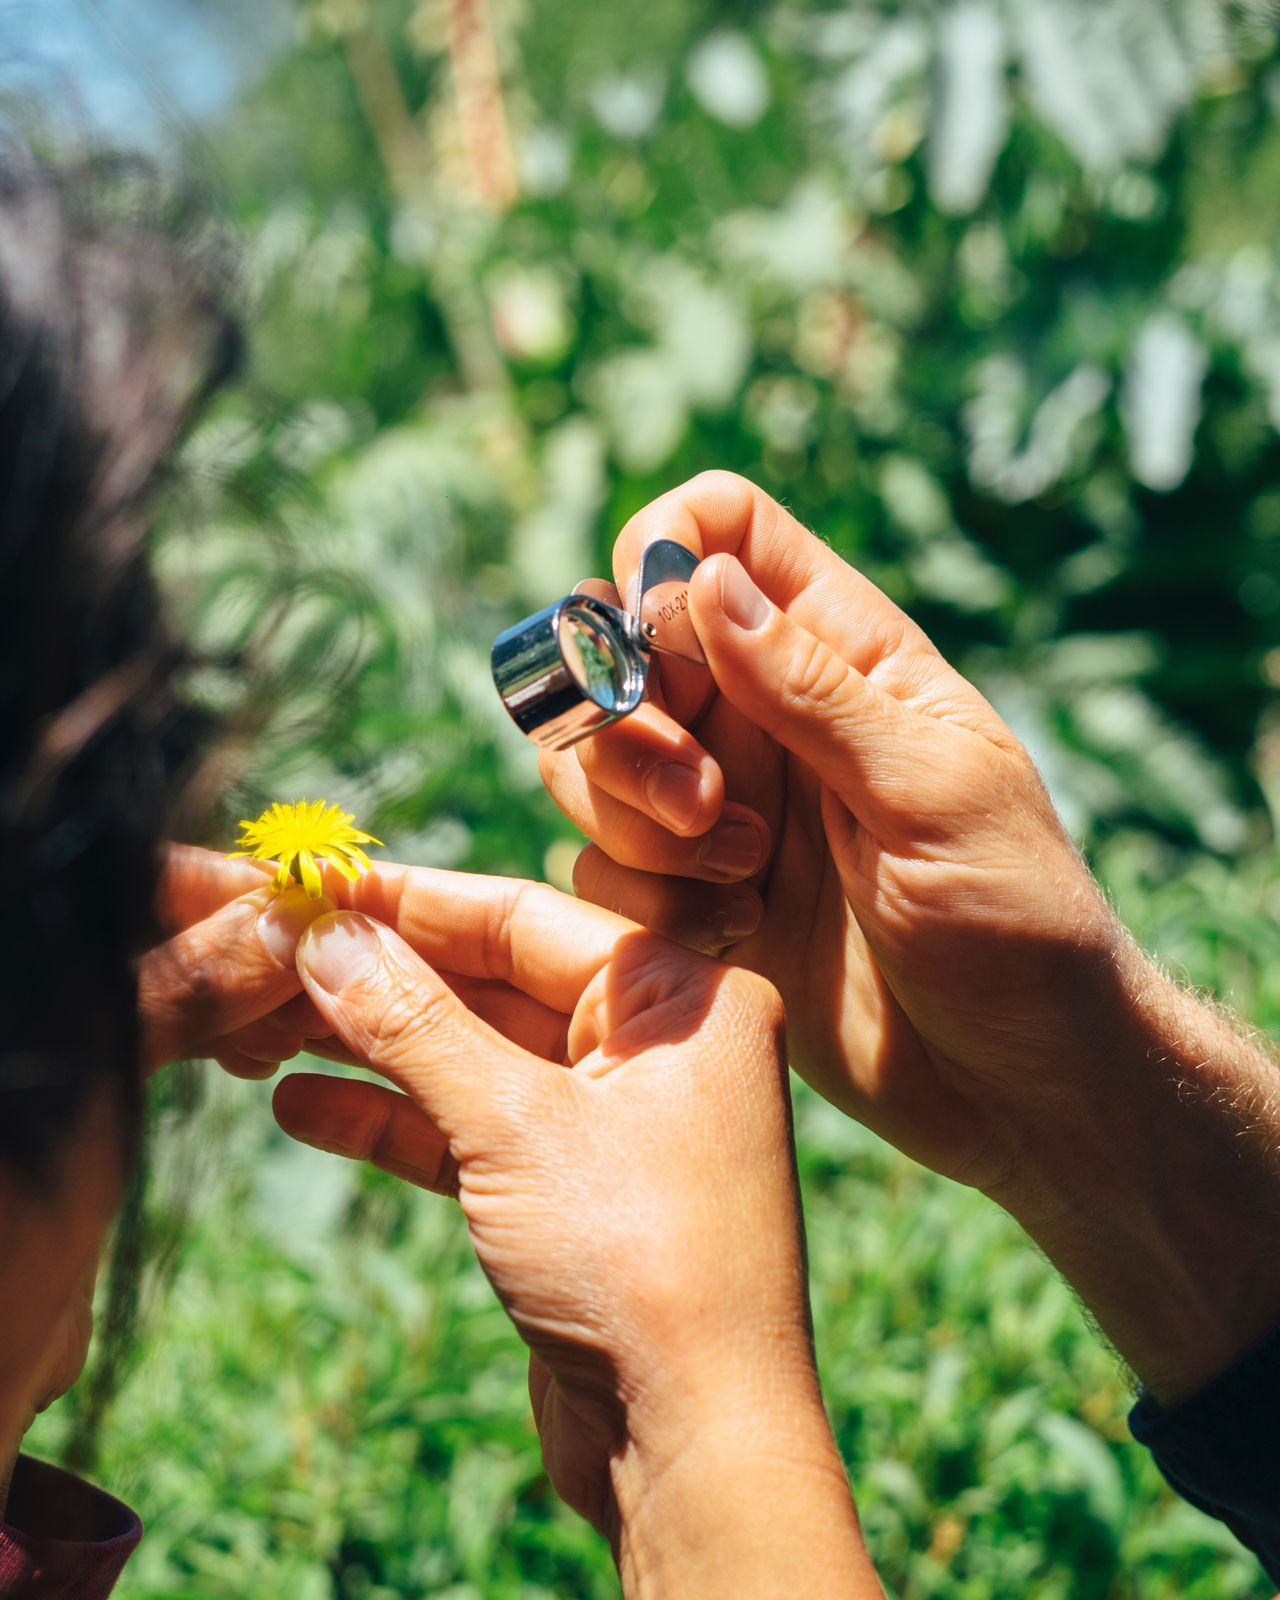 Human Hand Holding Real People Two People Human Body Part Smart Phone Outdoors Nature Rural Poetry Beauty In Nature Magnifying Glass Curiosity Learning Botany Day Focus On Foreground Togetherness Men Leisure Activity Close-up Lifestyles Women Nature